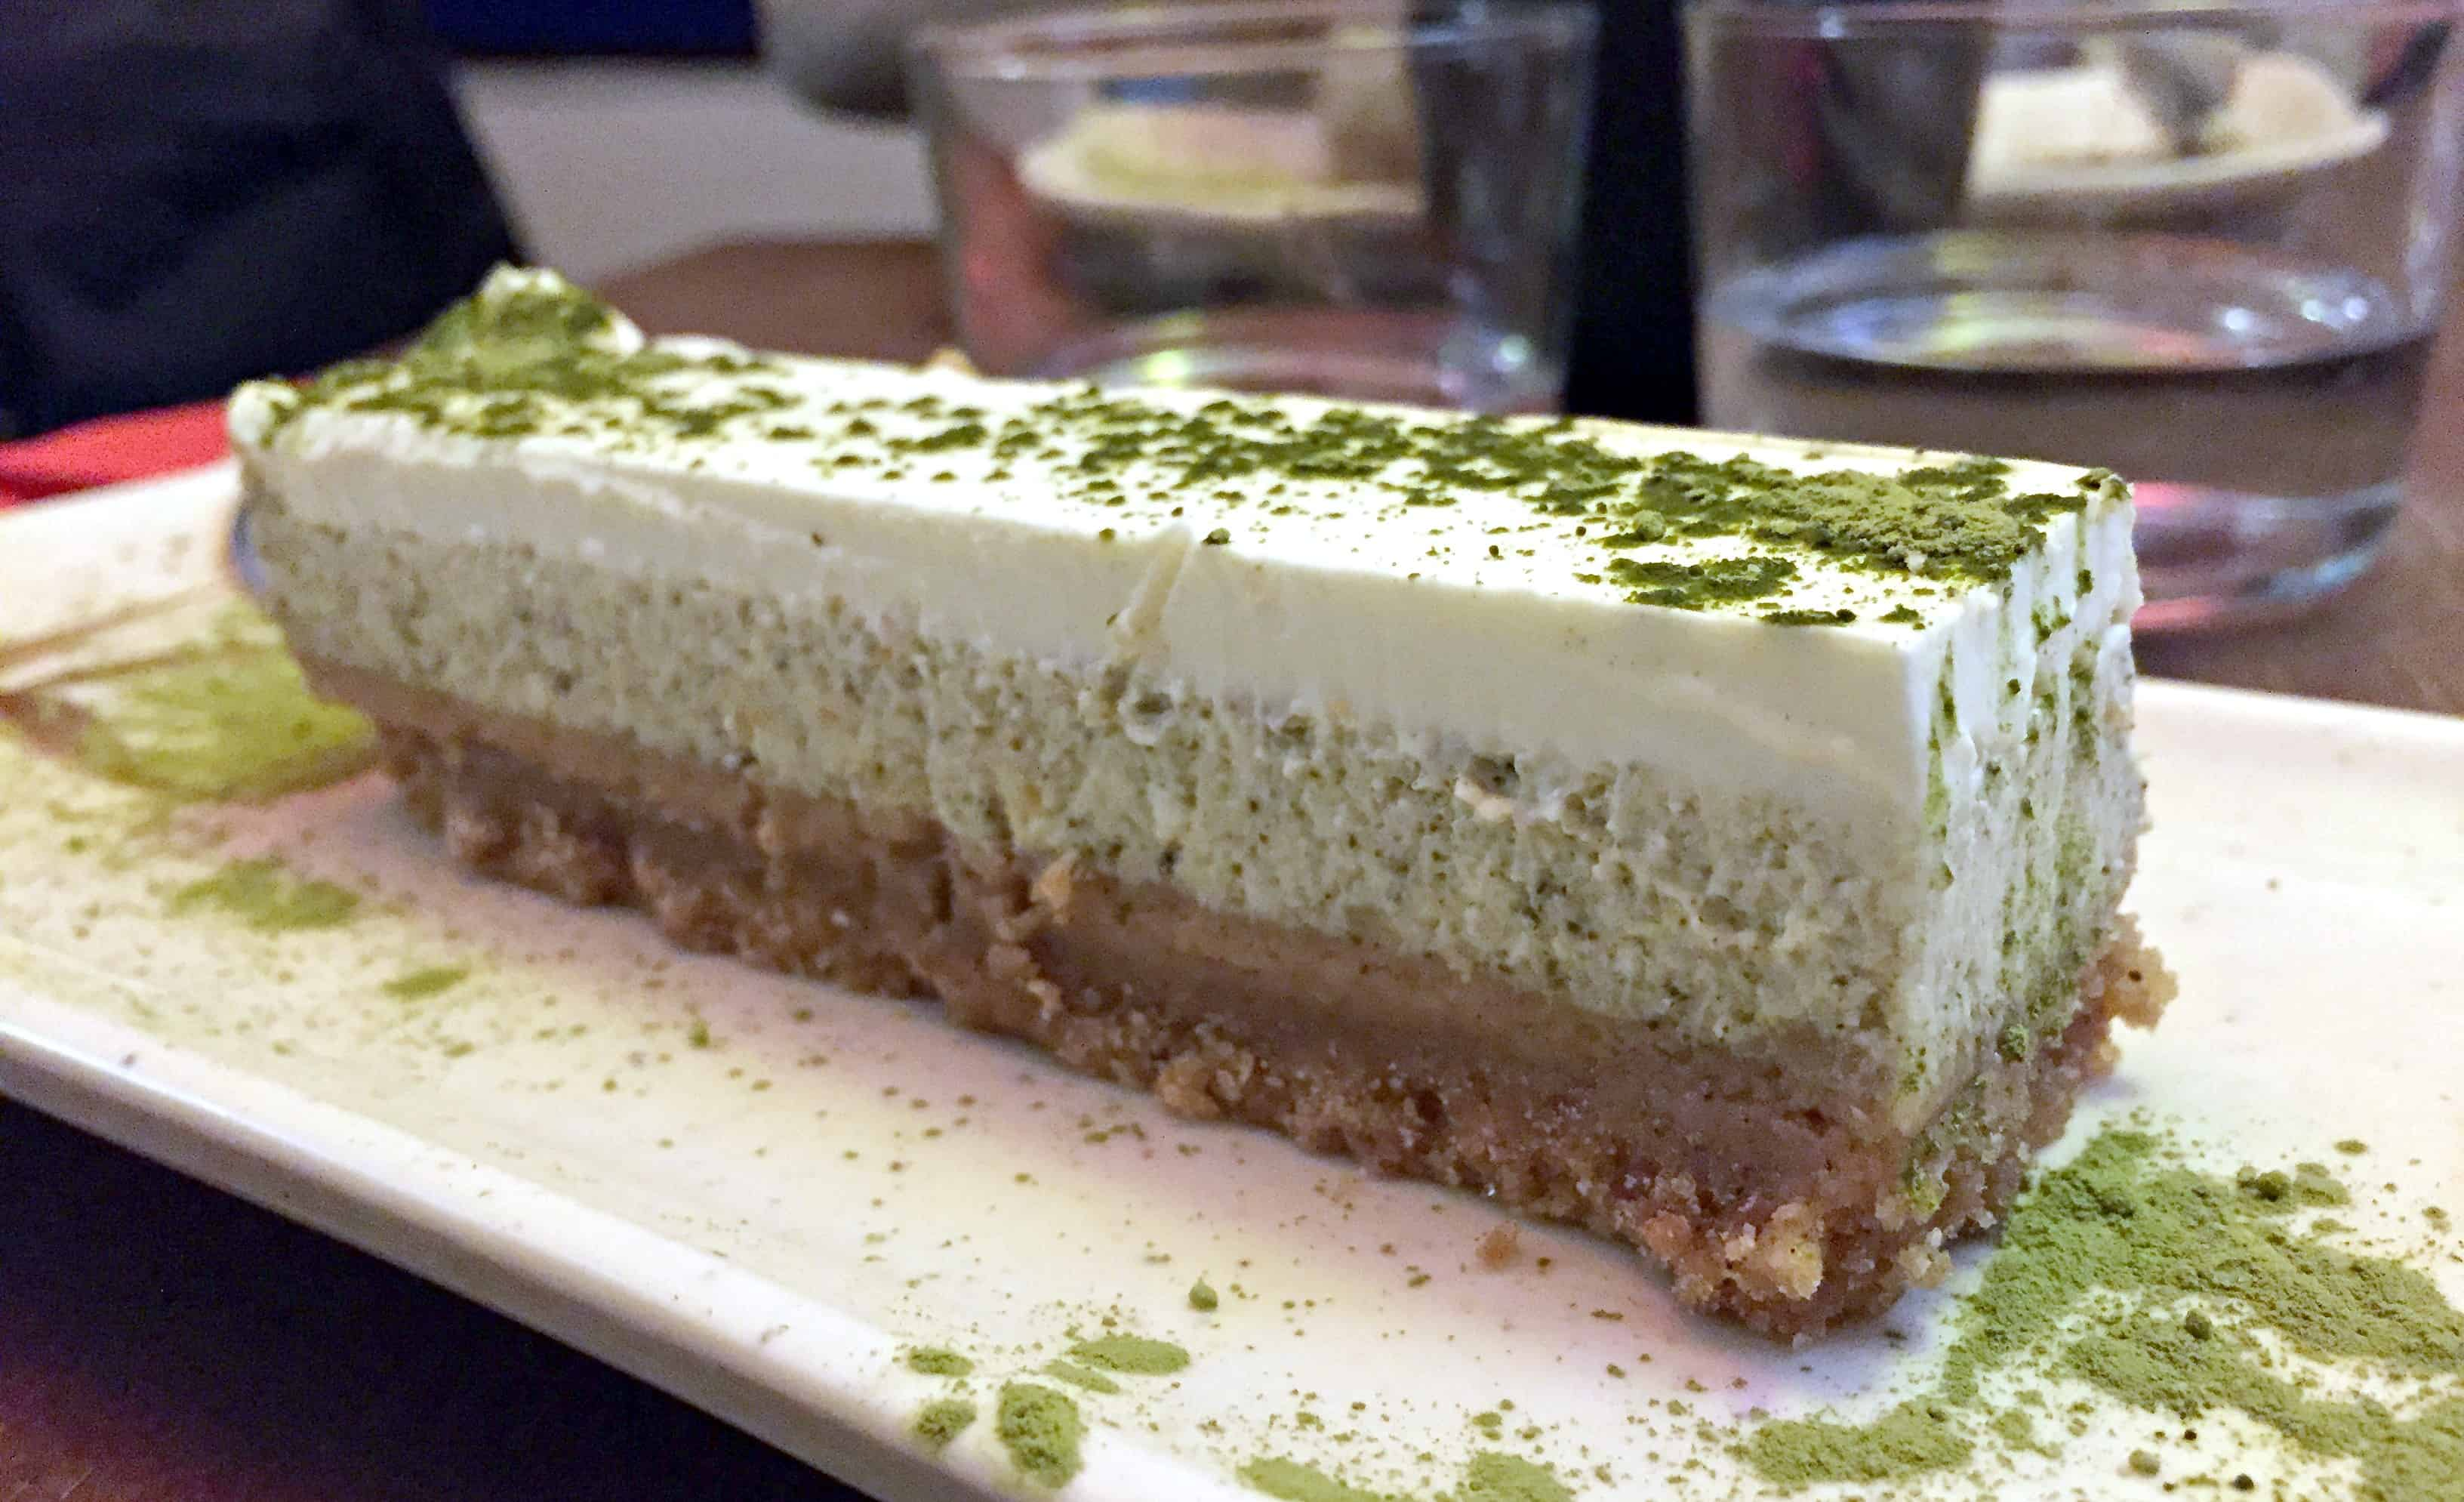 japanese restaurant in Paris - great desert with a japanese touch: Cheesecake with green tea on a specoloos dough.